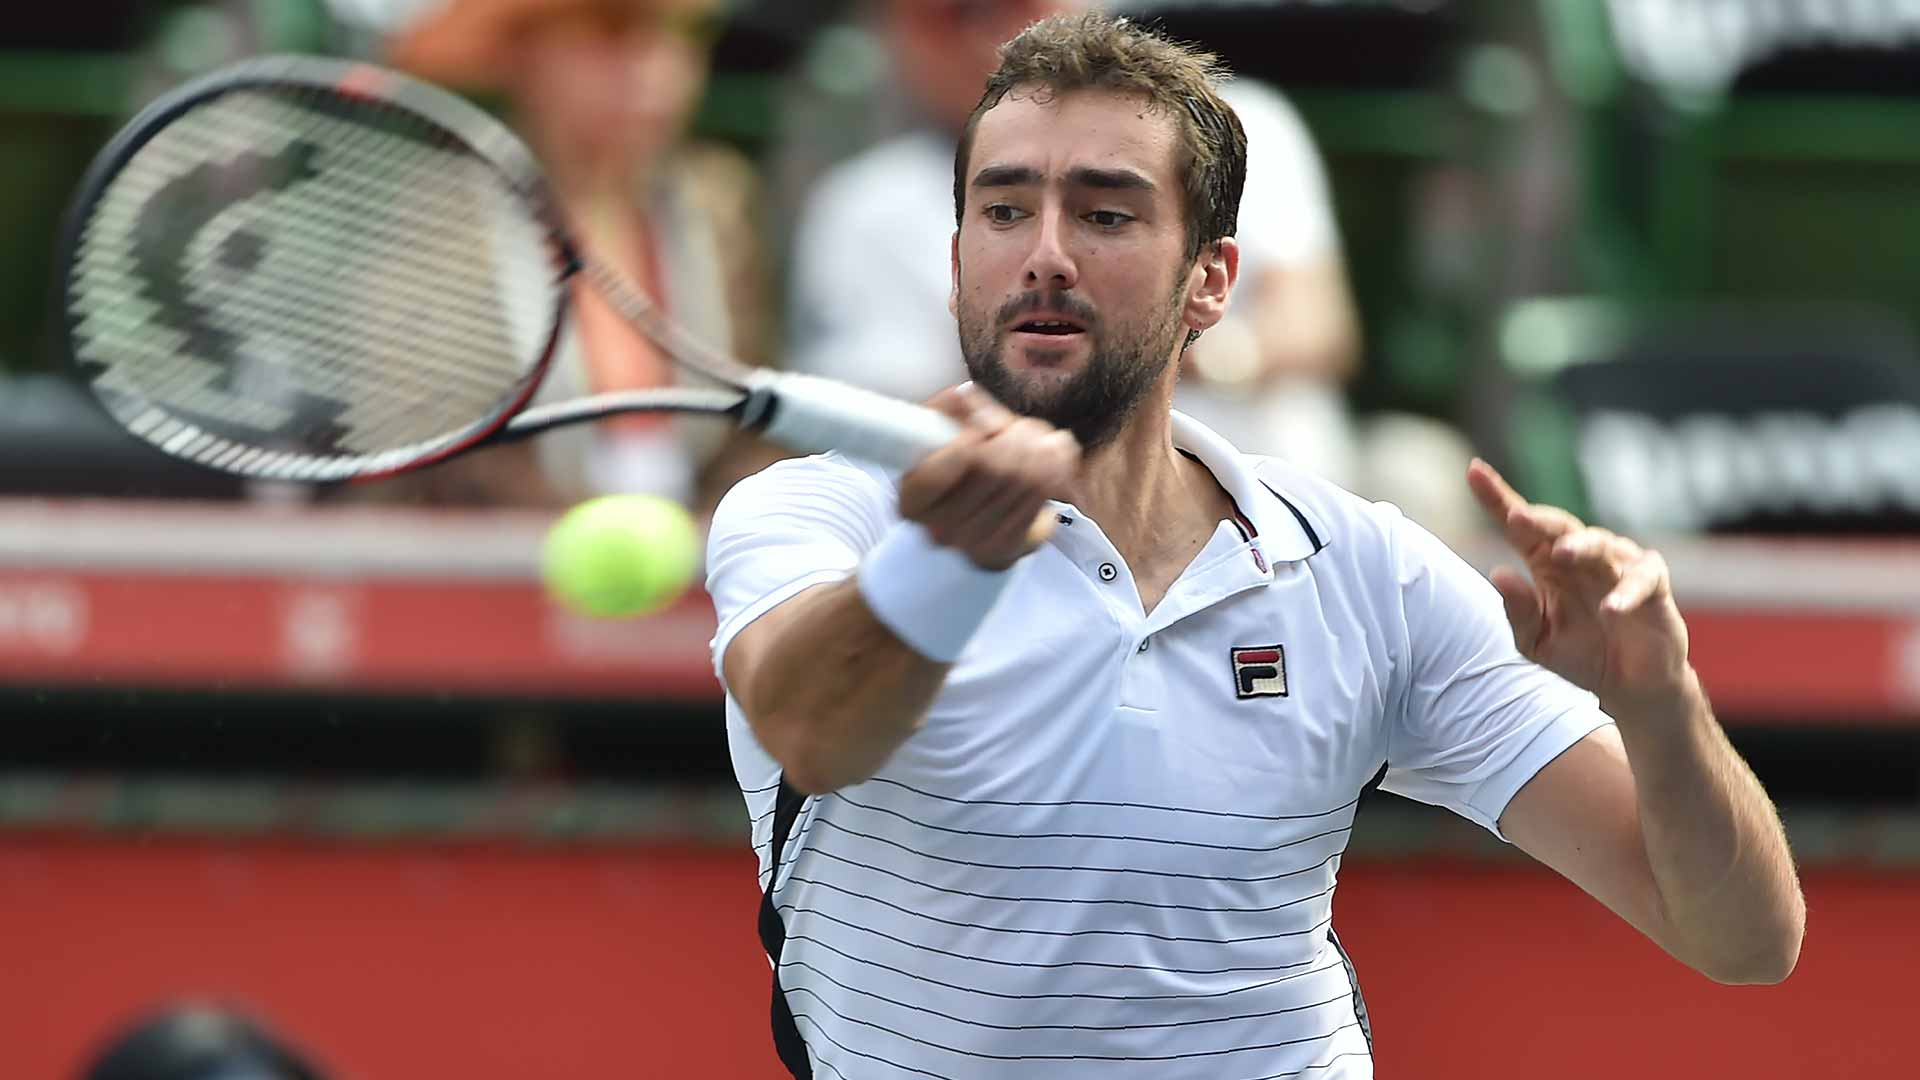 Marin Cilic will aim for his first win over David Goffin in the semi-finals.